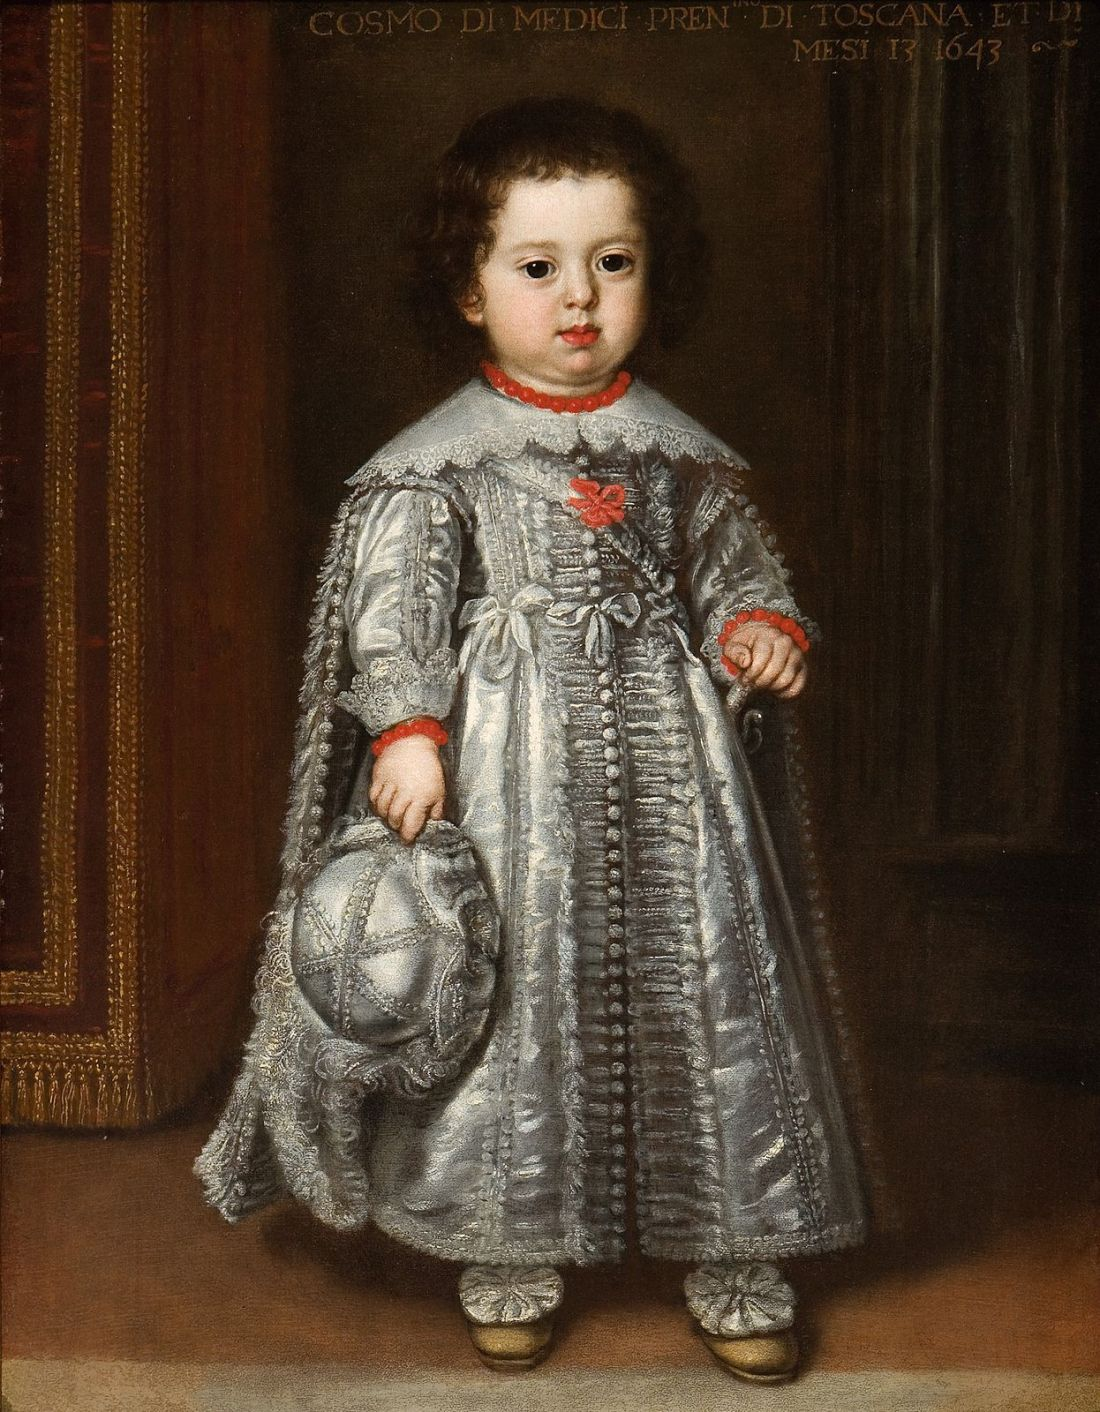 """Cosimo III de' Medici, Grand Duke of Tuscany."" 1643."